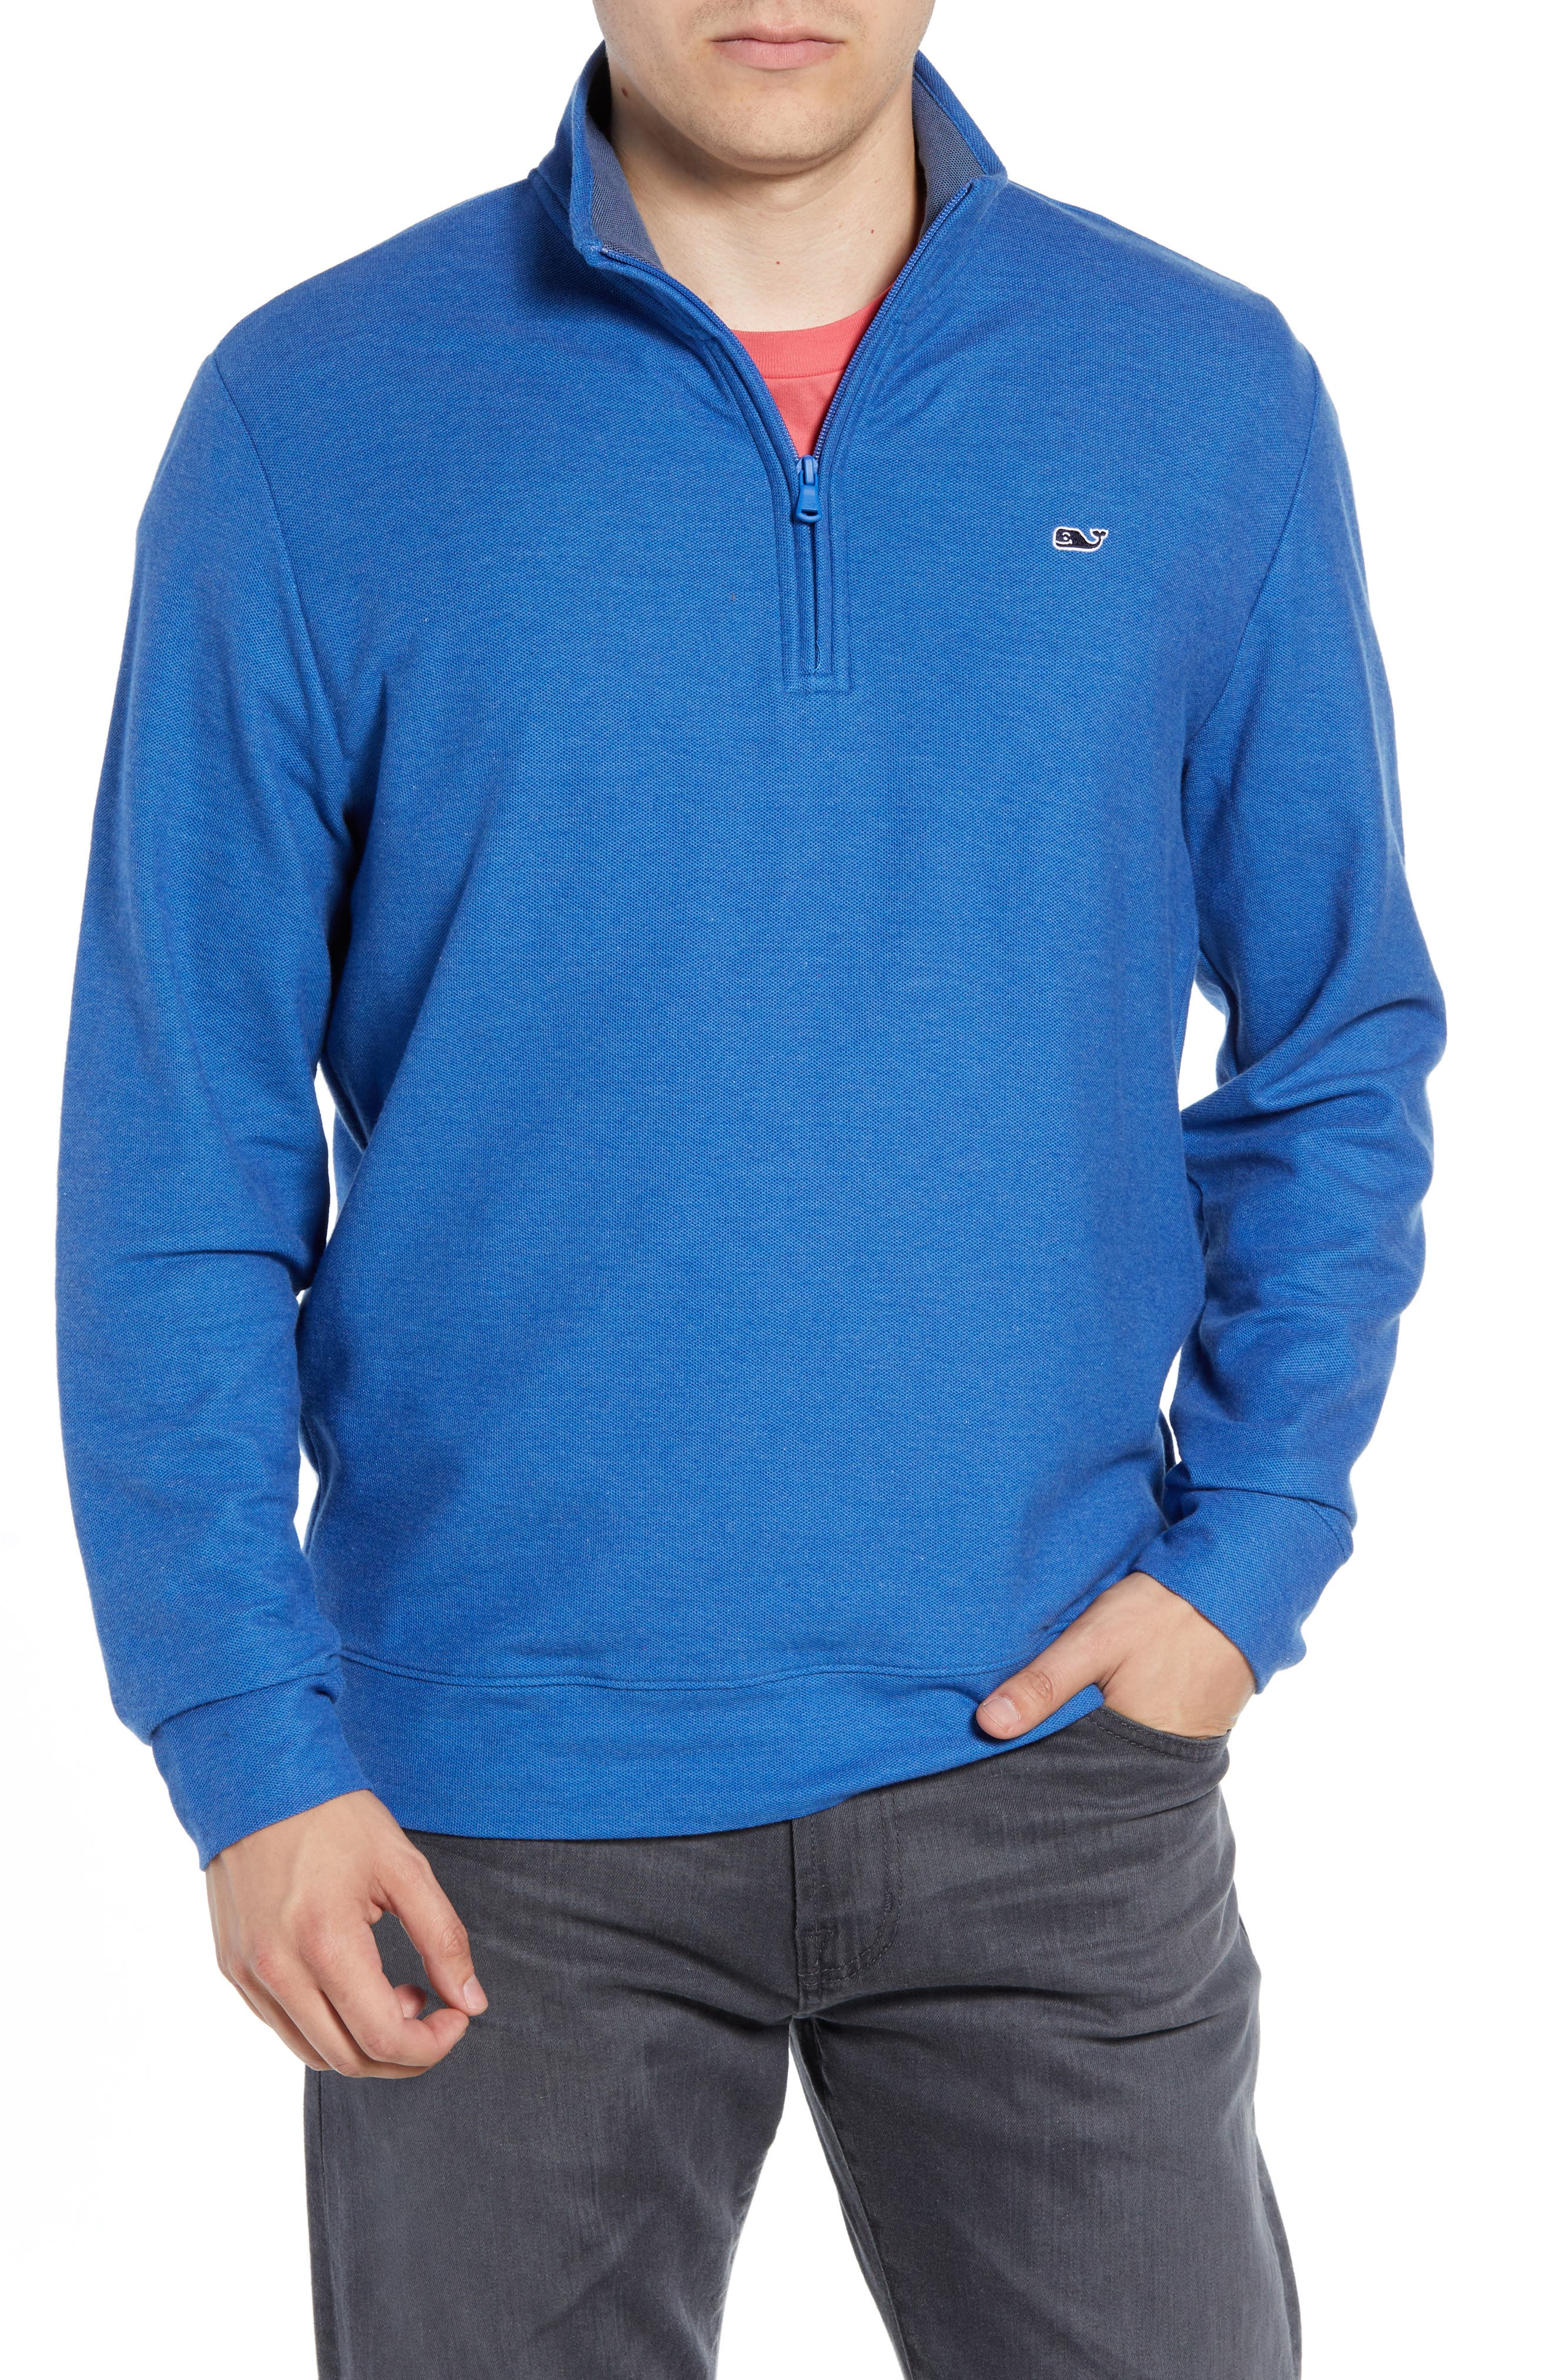 Breaker Saltwater Quarter Zip Pullover,                             Main thumbnail 1, color,                             HULL BLUE